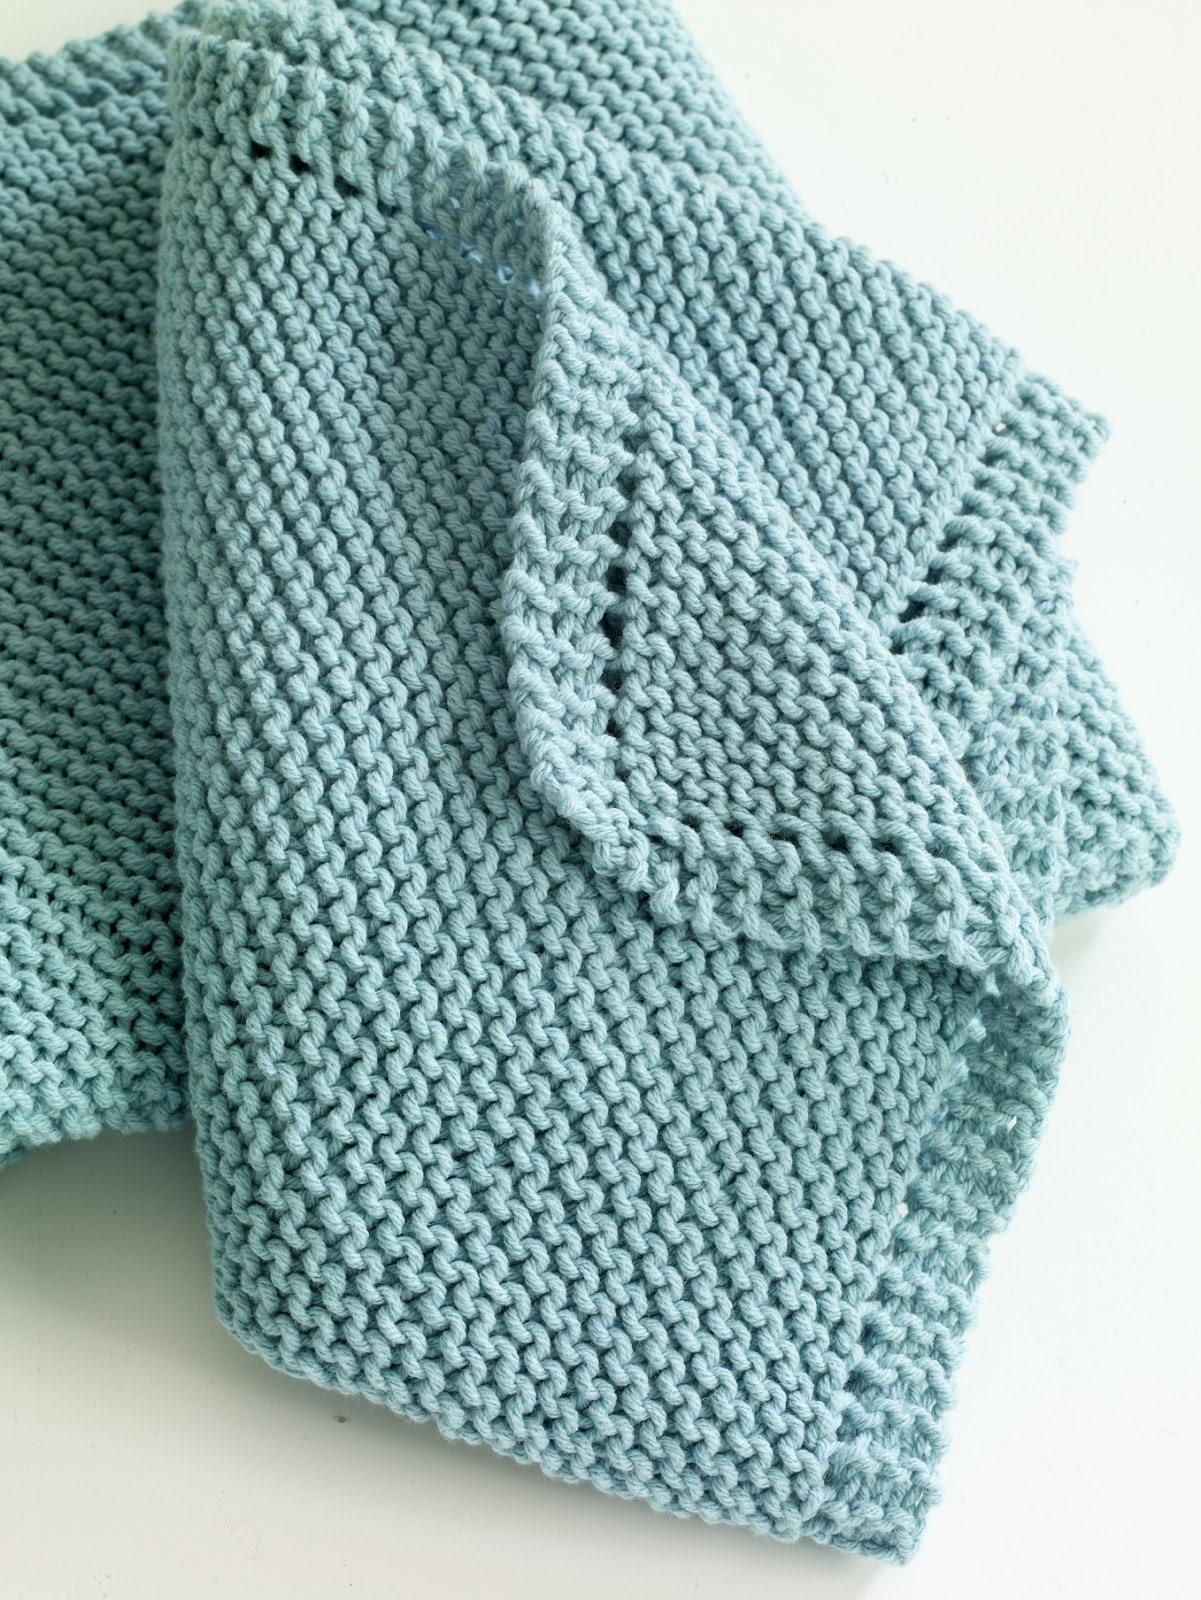 Baby Blanket Knitting Patterns For Beginners : Serenity Knits: December 2012